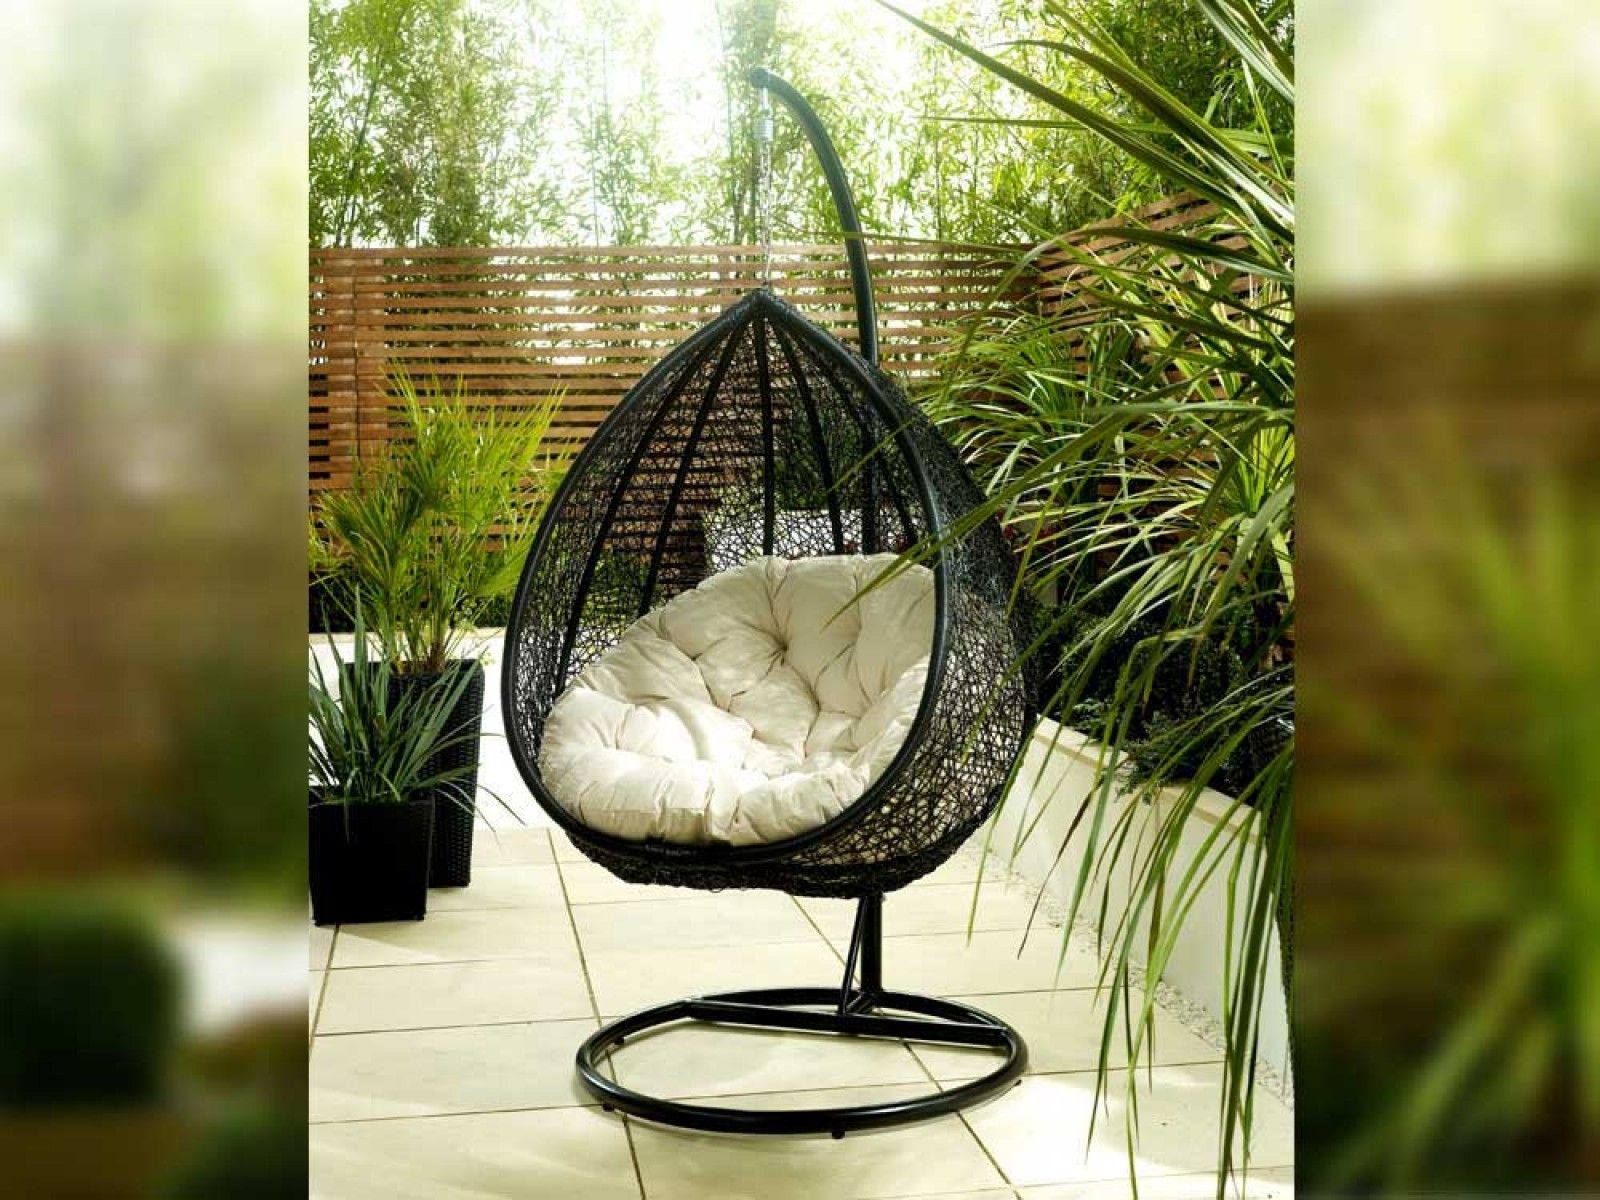 Teardrop - Sit, relax, listen to live commentary & enjoy the sun!